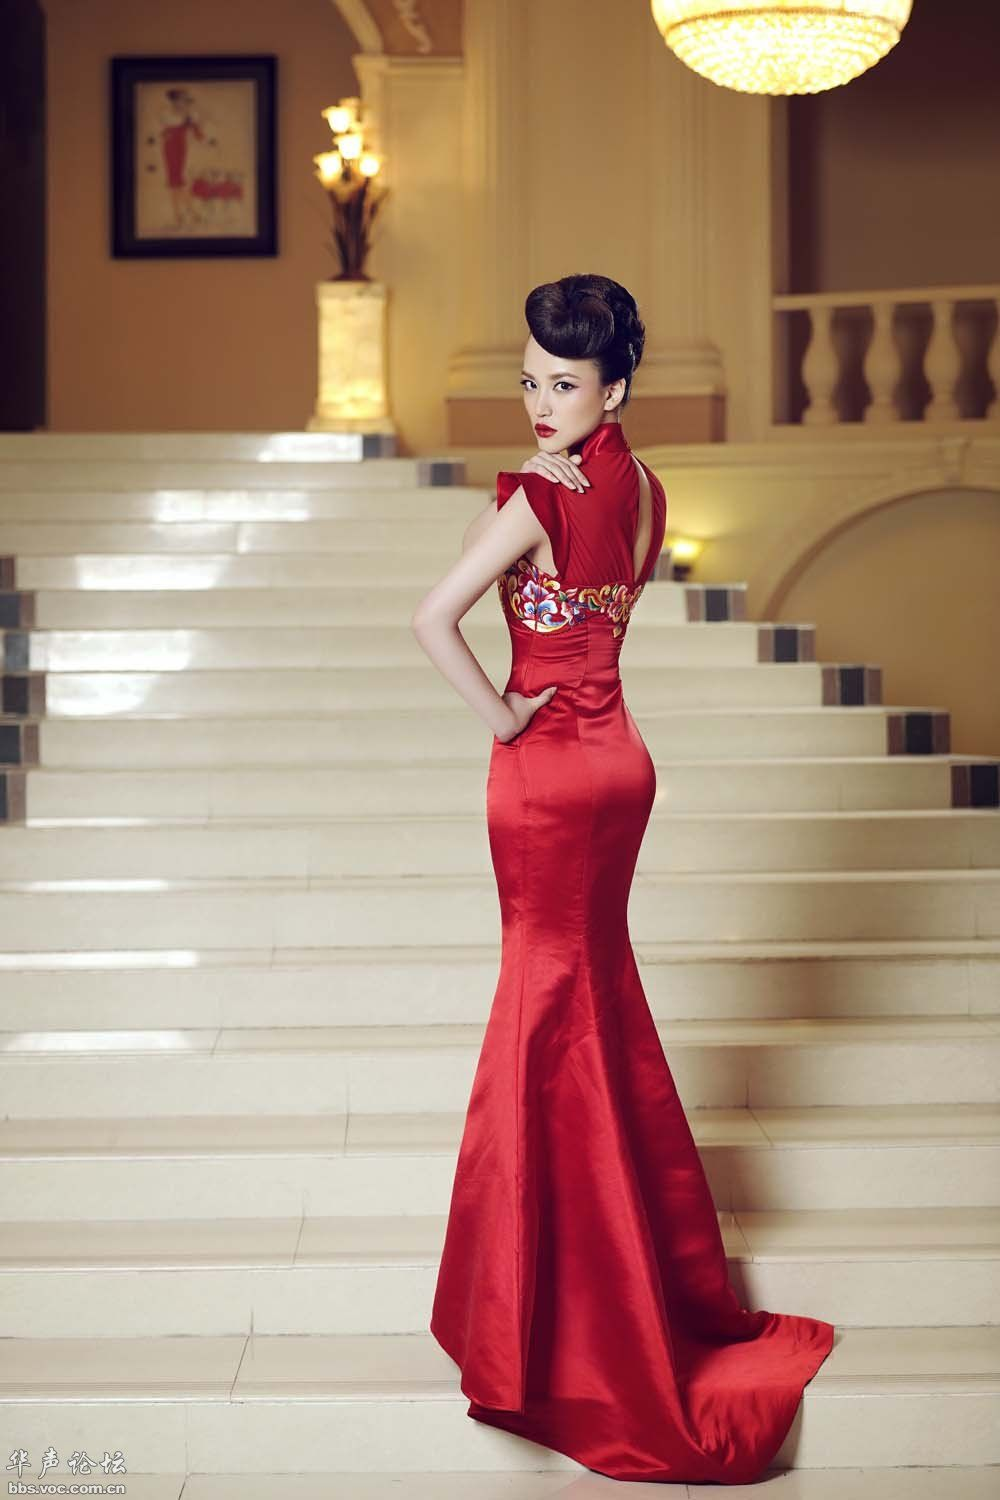 Brainy Mademoiselle Red Qipao Or Red Cheongsam Red Chinese Dress Red Wedding Dresses Red Chinese Wedding Dress [ 1500 x 1000 Pixel ]